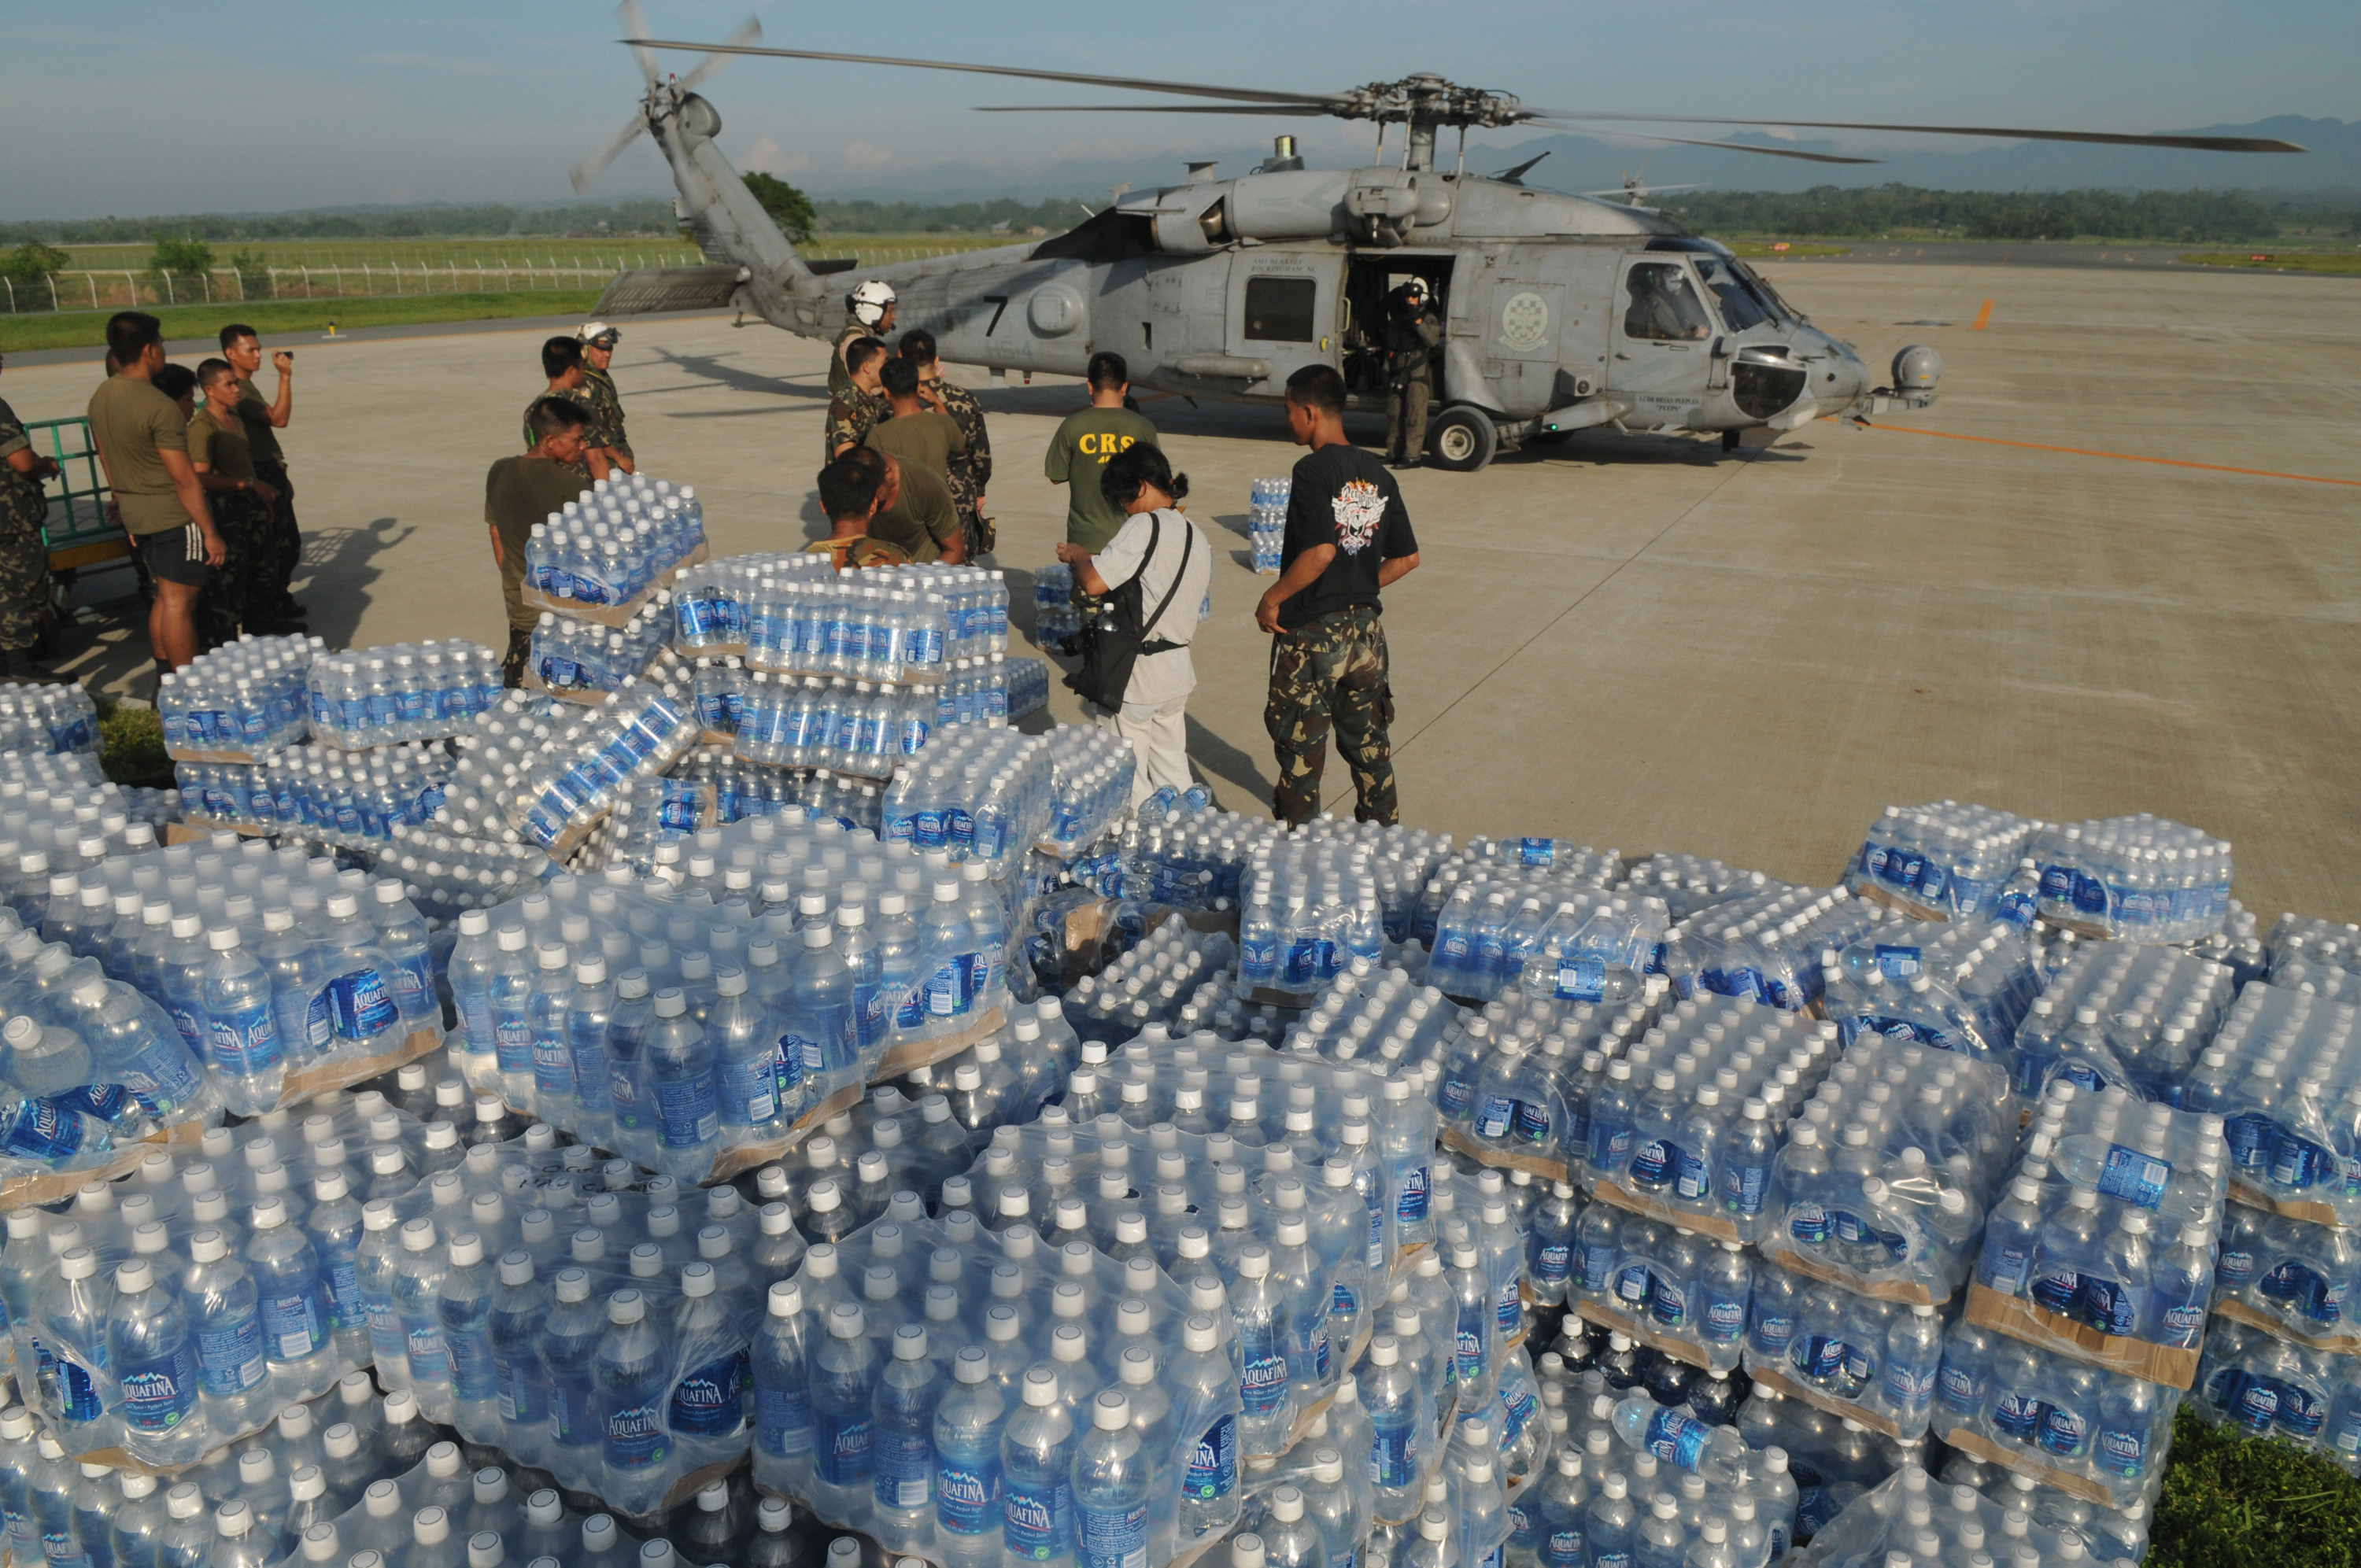 US_Navy_080626-N-4009P-635_Bottles_of_water_transported_from_the_Nimitz-class_aircraft_carrier_USS_Ronald_Reagan_(CVN_76)_wait_to_be_delivered_to_devastated_areas_in_the_Republic_of_the_Philippines.jpg